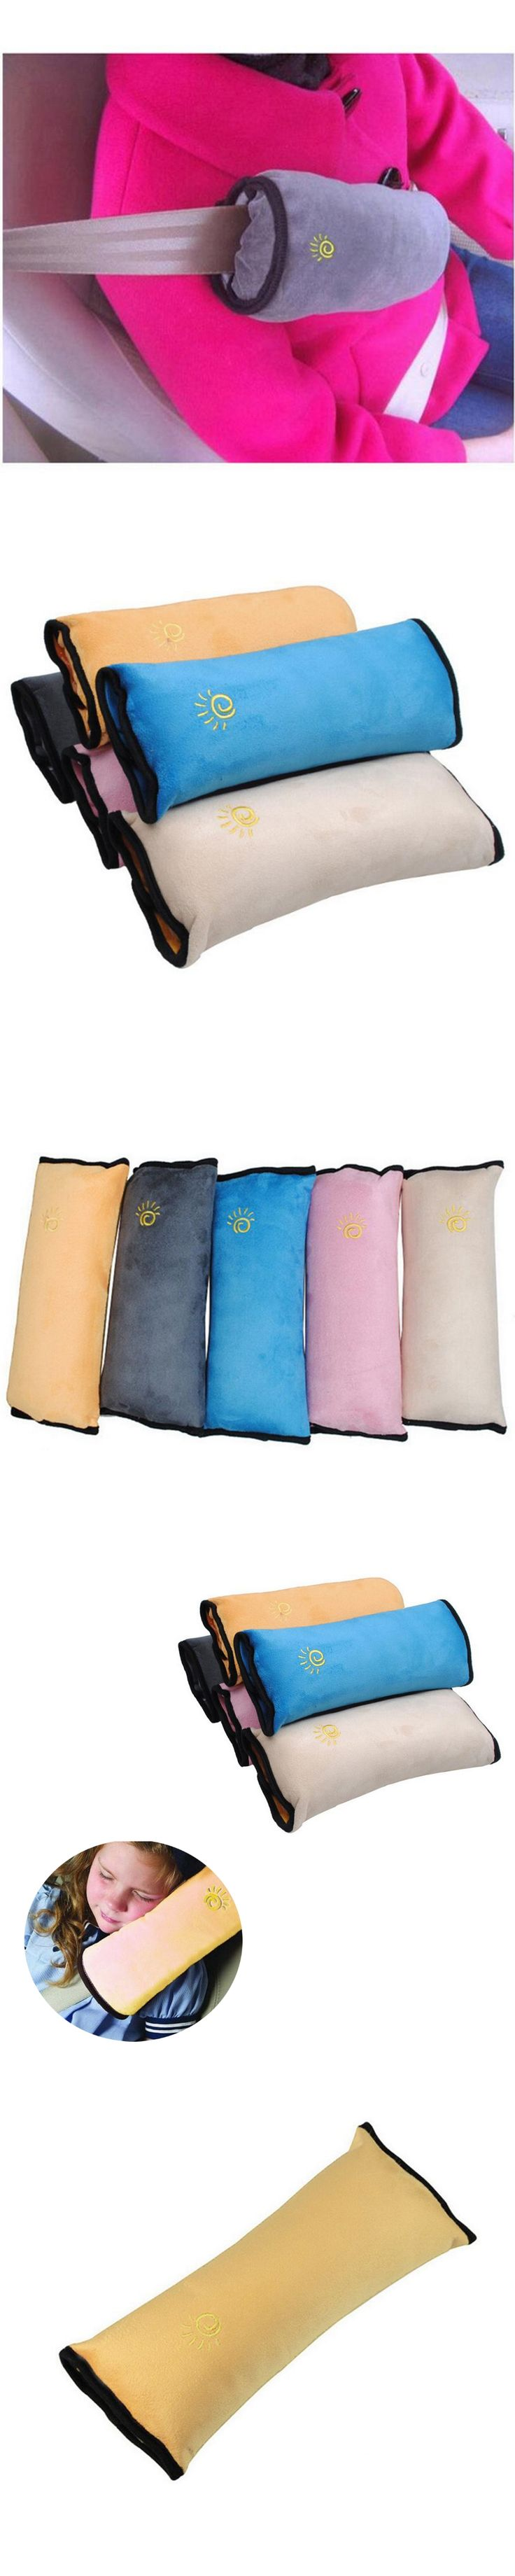 New Baby Car Auto Safety Seat Belt Harness Shoulder Children Protection Covers Cushion Support Pad Cover Pillow Car Accessories